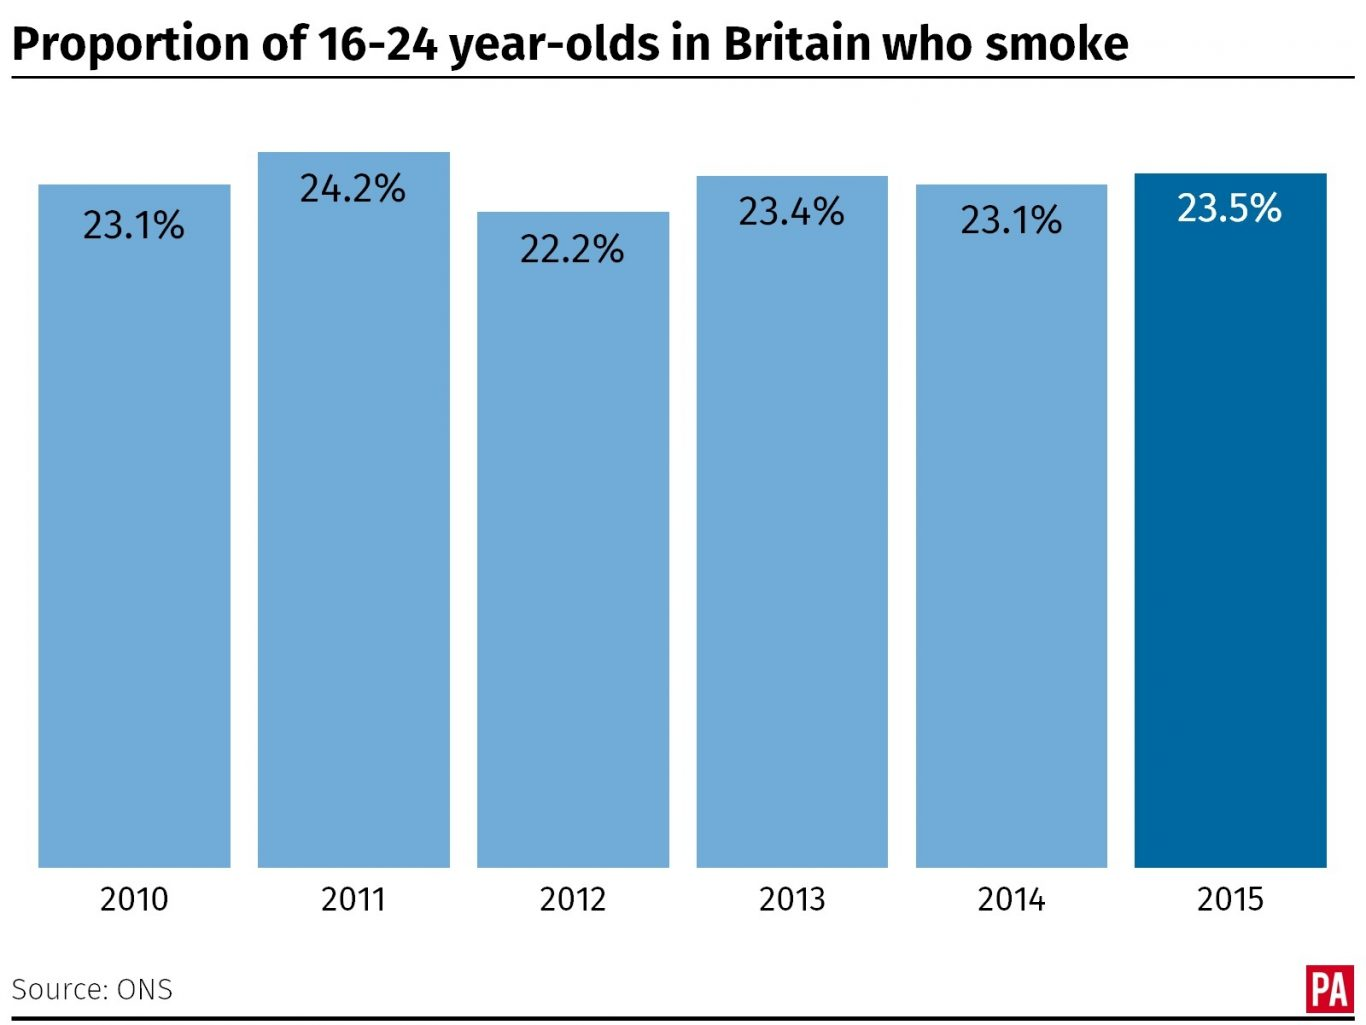 The proportion of 16-24 year-olds in Britain who smoke